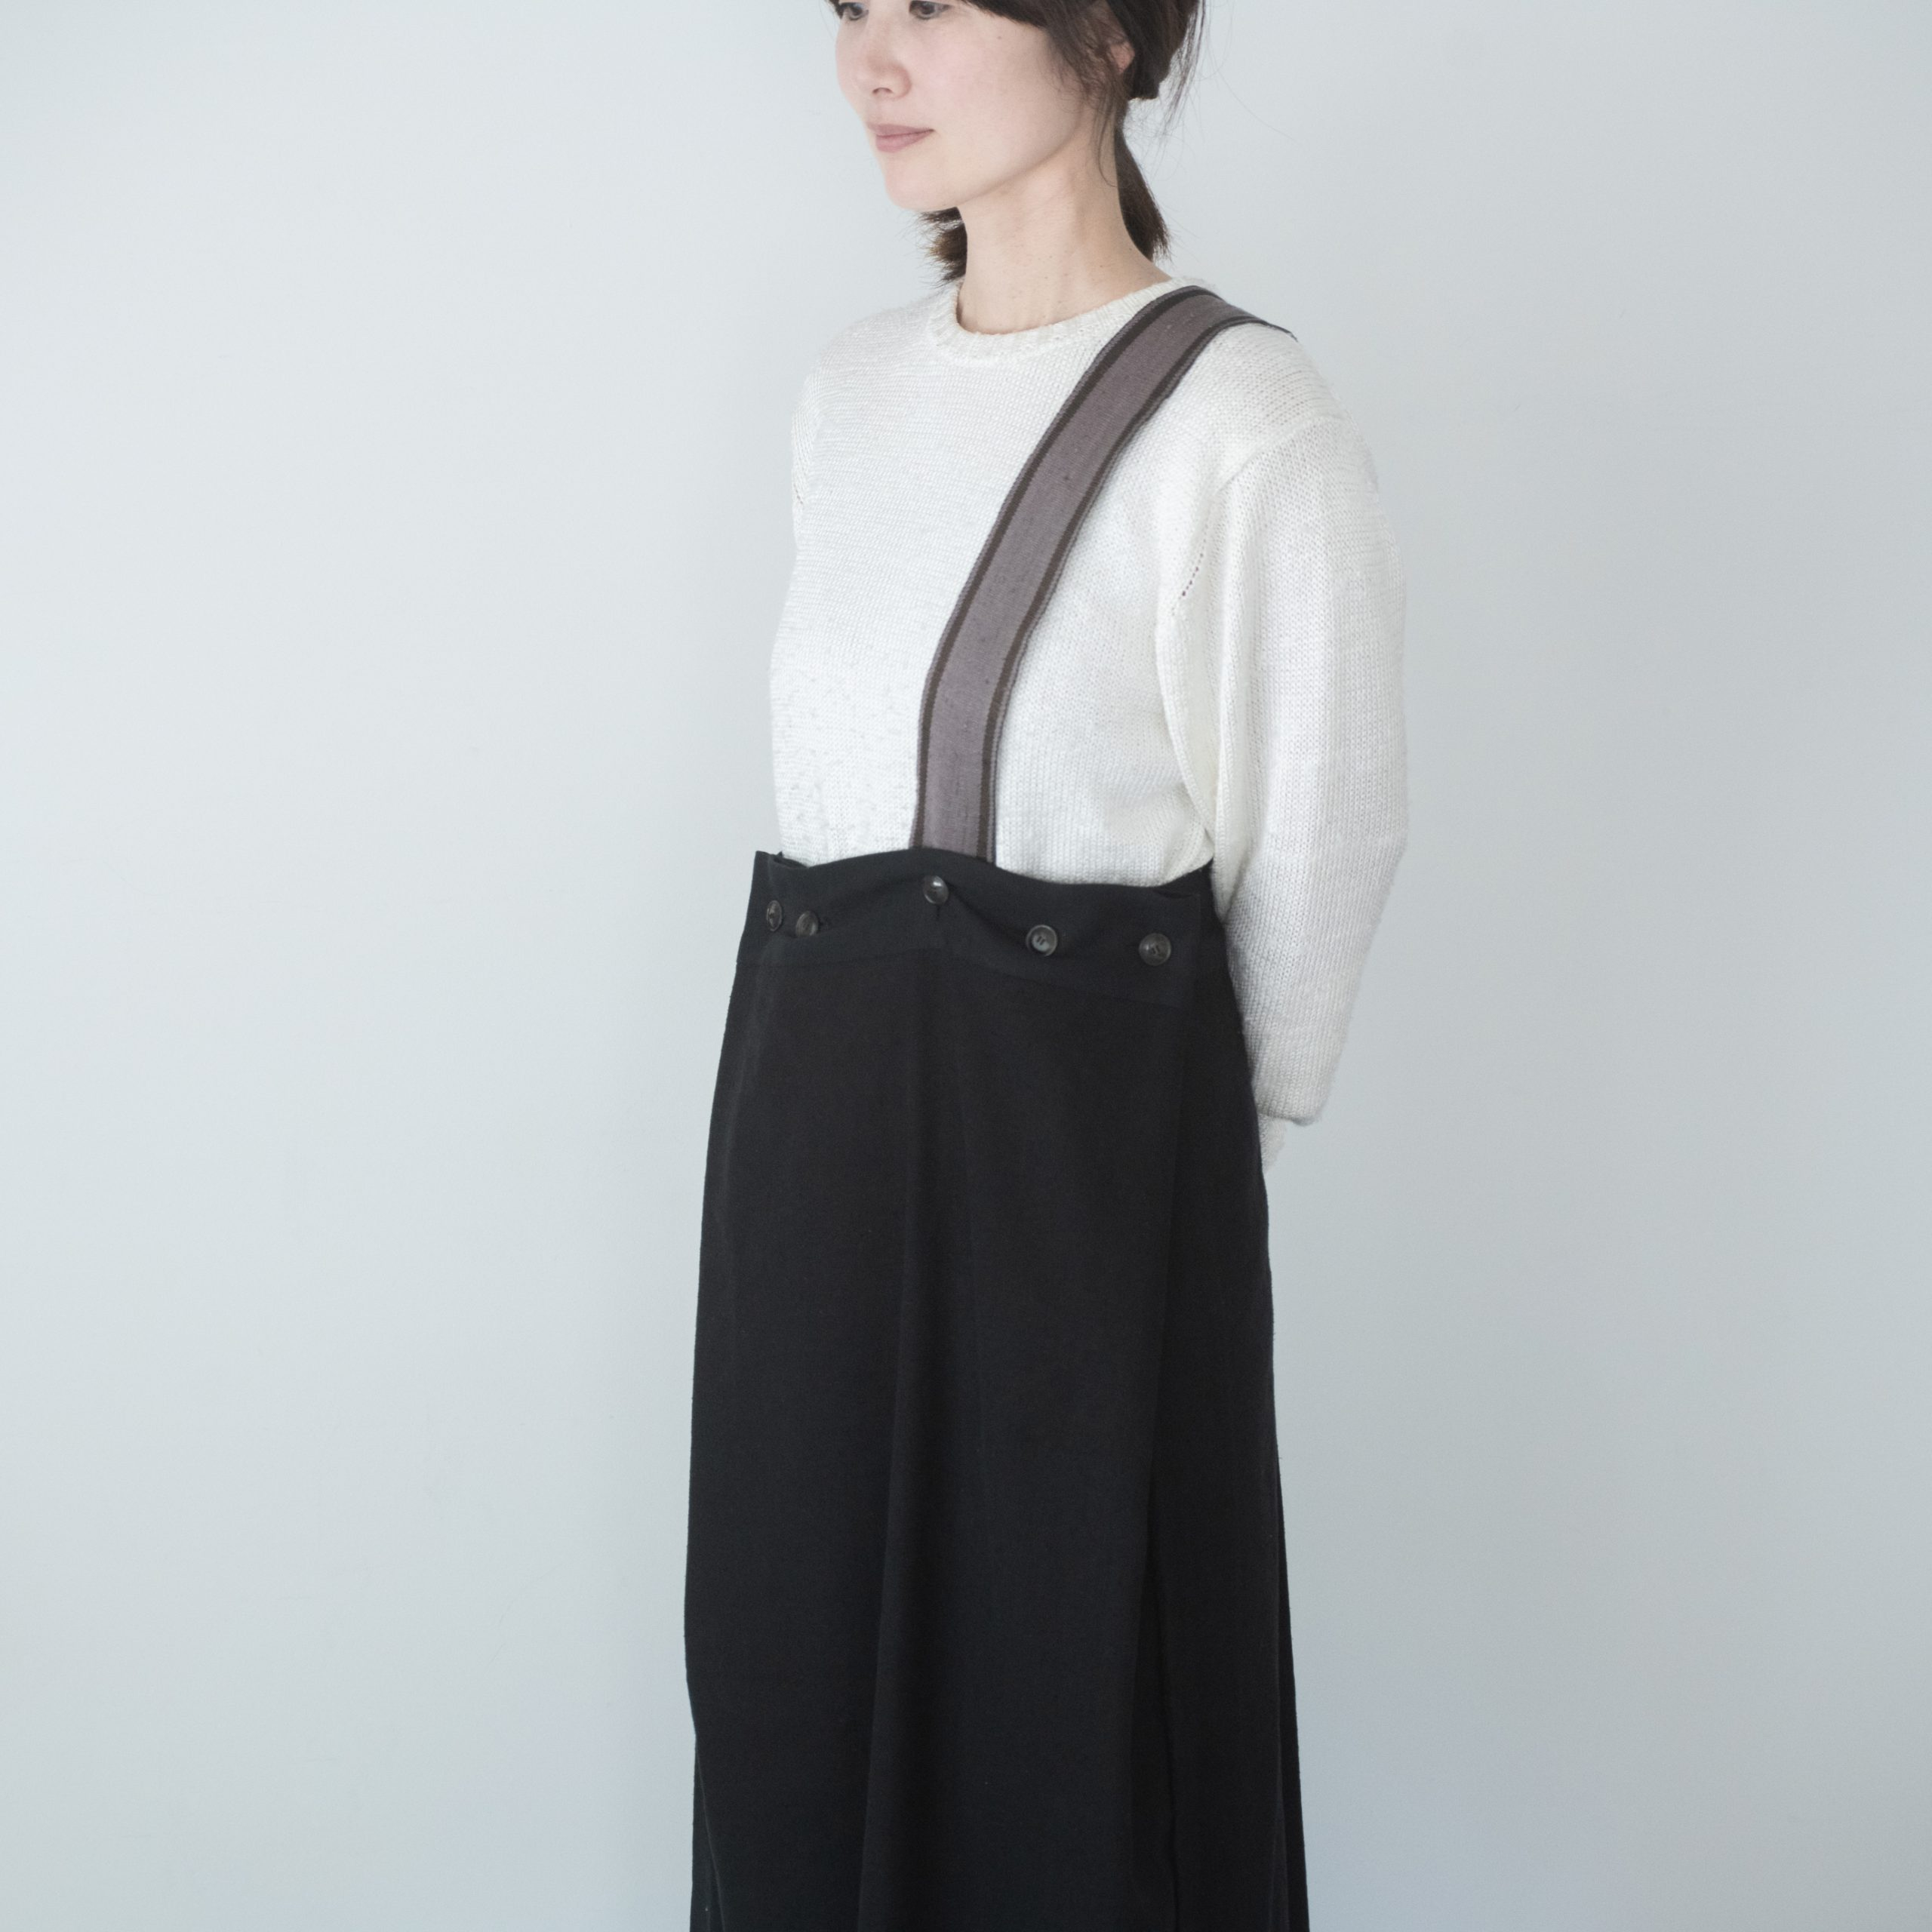 silk linen wrap skirt(black)